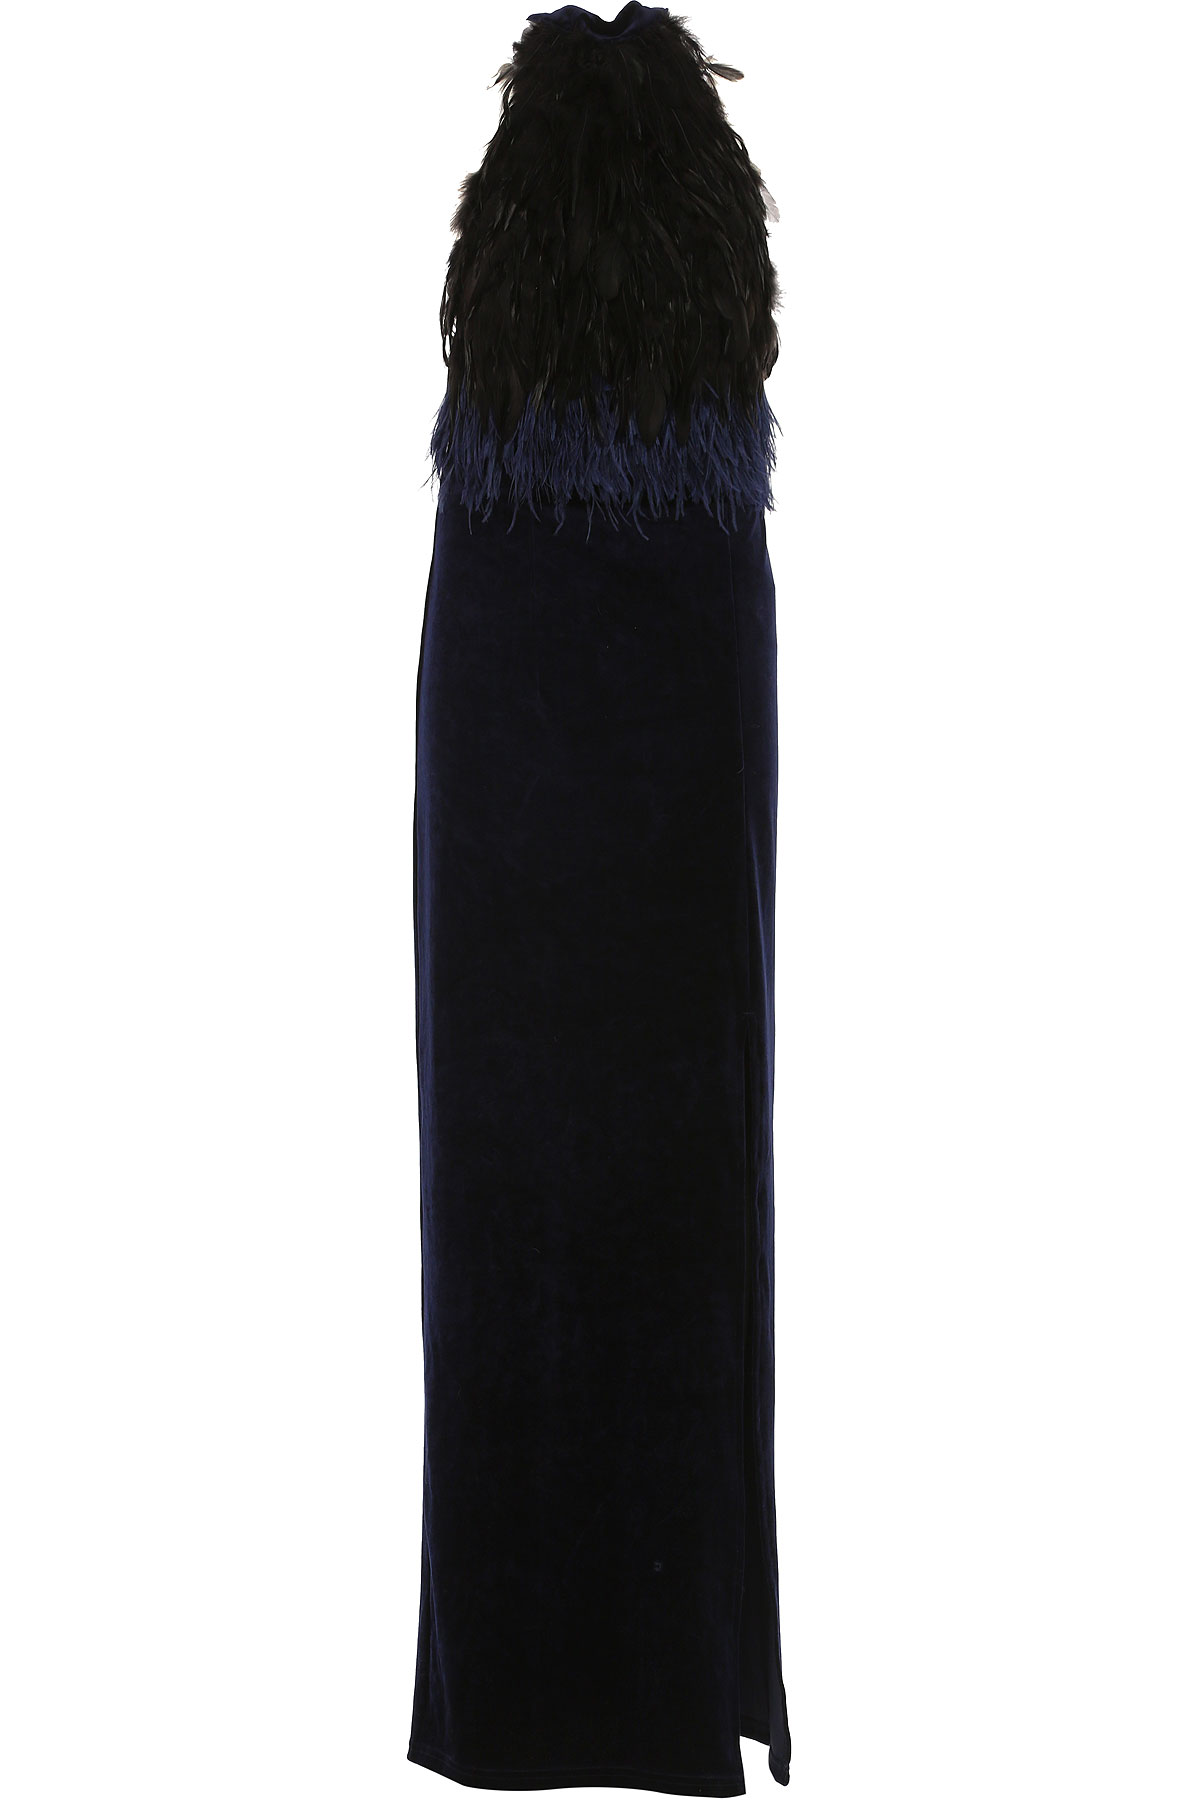 Image of Silvian Heach Dress for Women, Evening Cocktail Party, Blue, polyester, 2017, 10 4 6 8